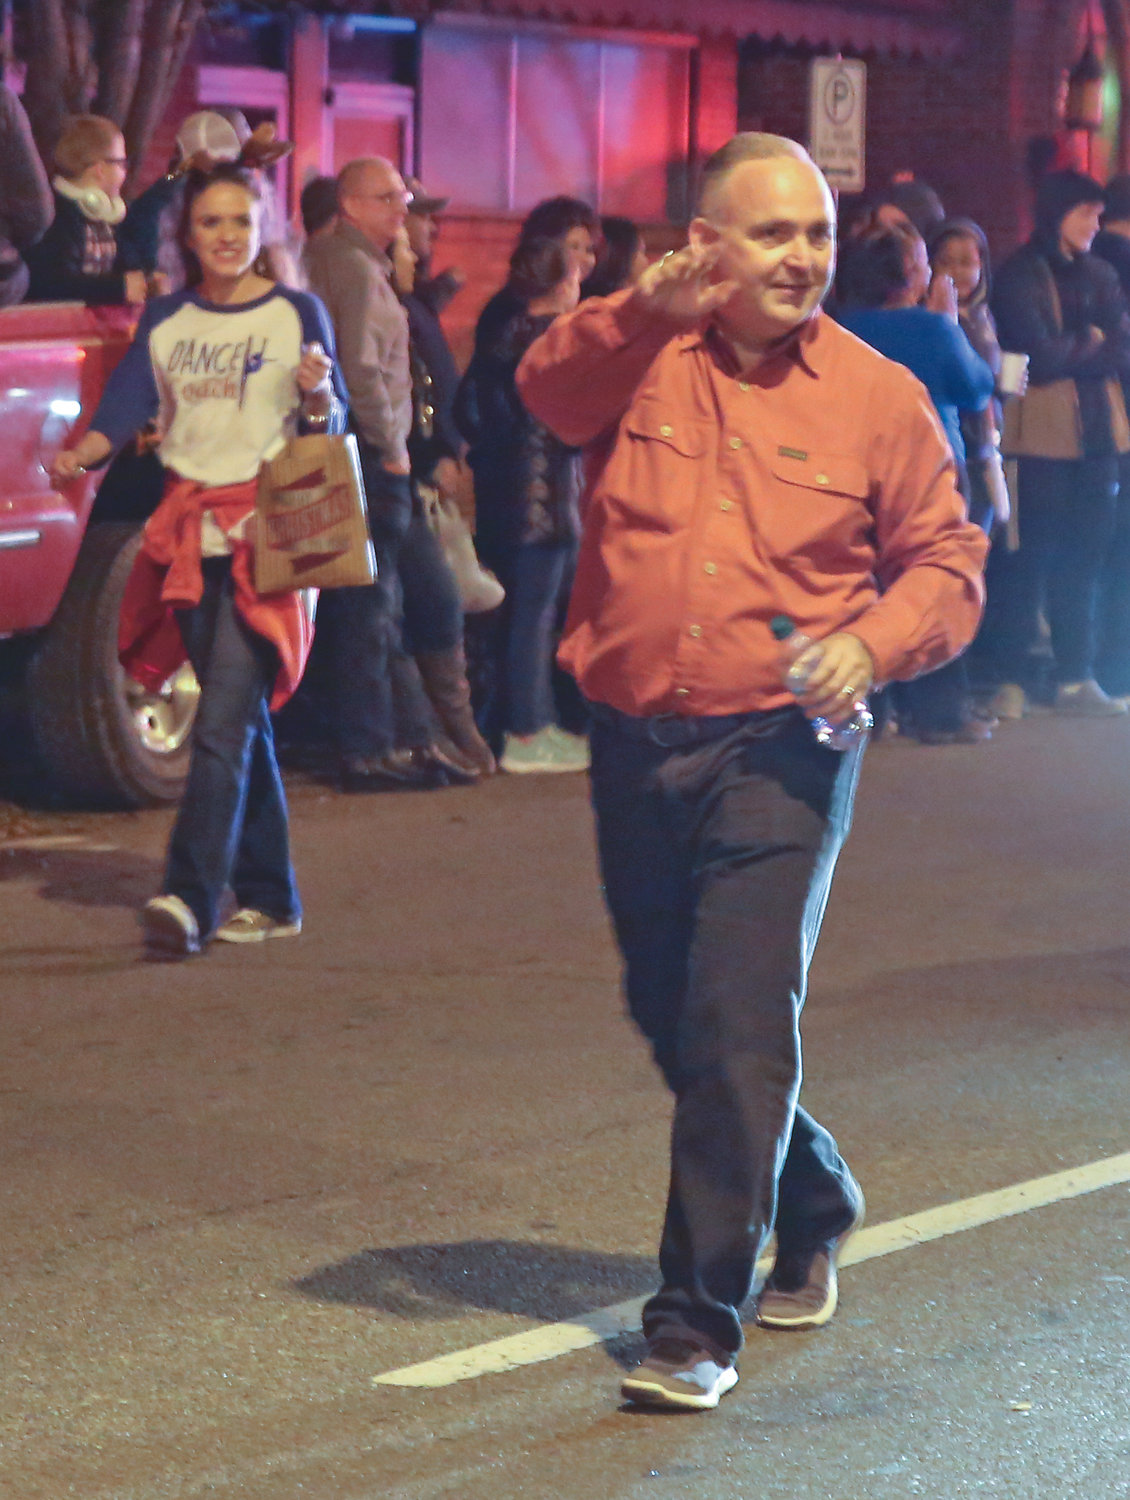 MAYOR KEVIN BROOKS walks down Broad Street for the first time as mayor during the MainStreet Christmas Parade.